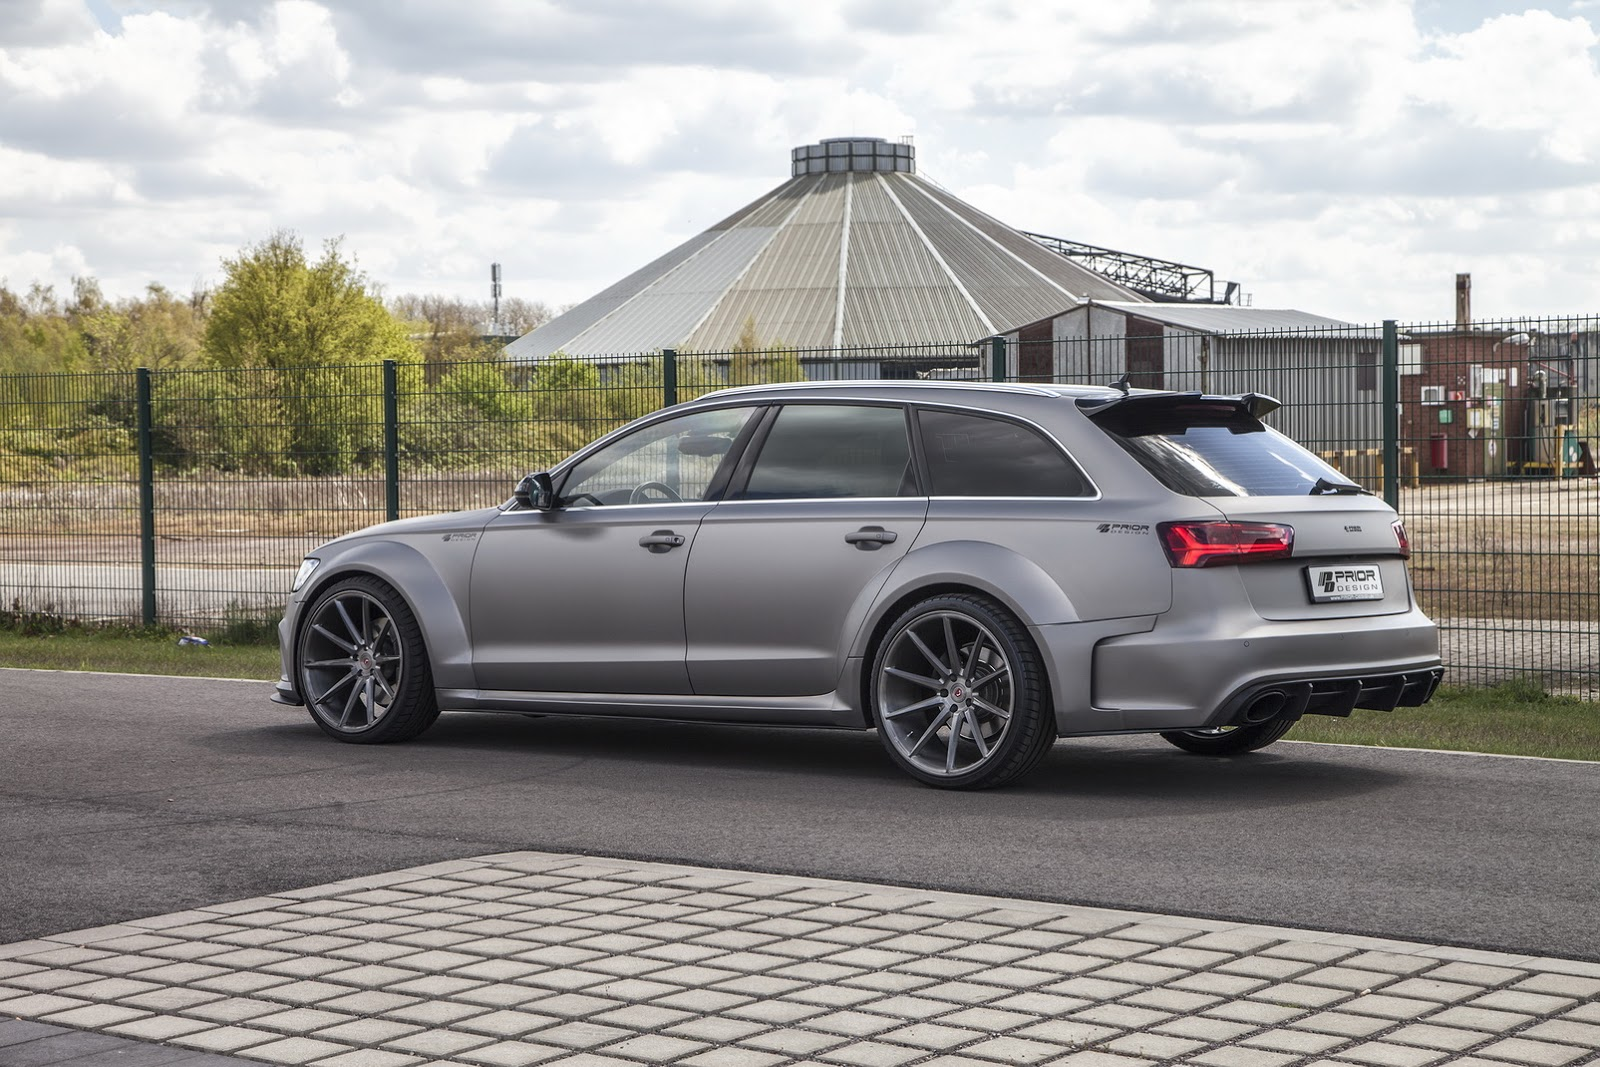 Widebody Audi RS6 by Prior Design Shows Muscles in Monte Carlo - autoevolution